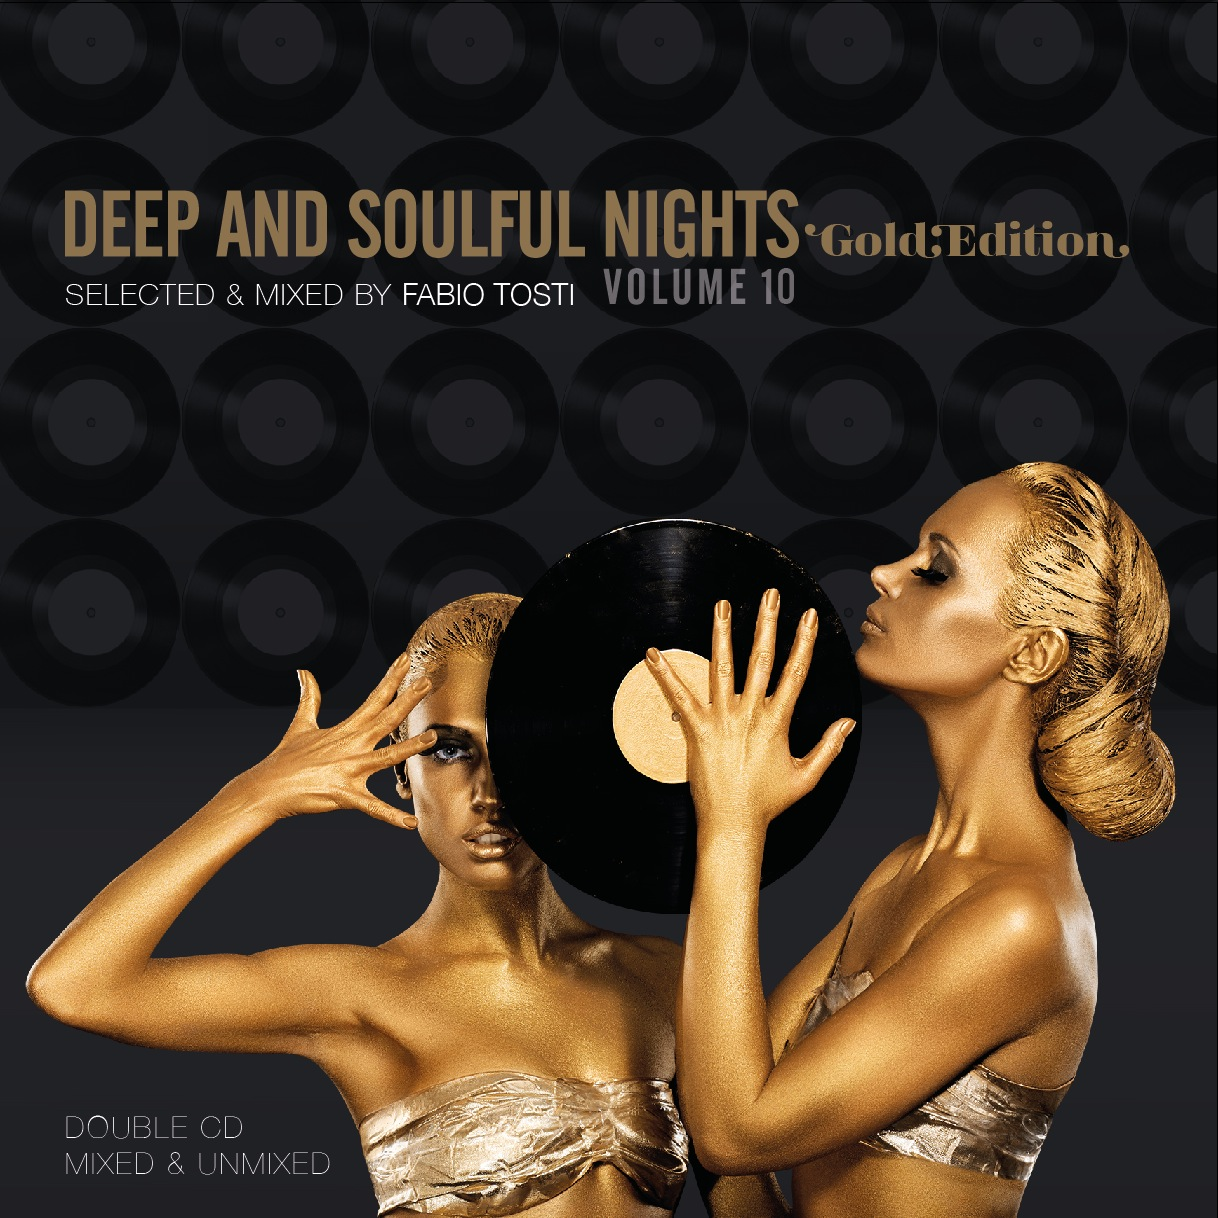 Deep and Soulful Nights vol. 10 Gold Edition